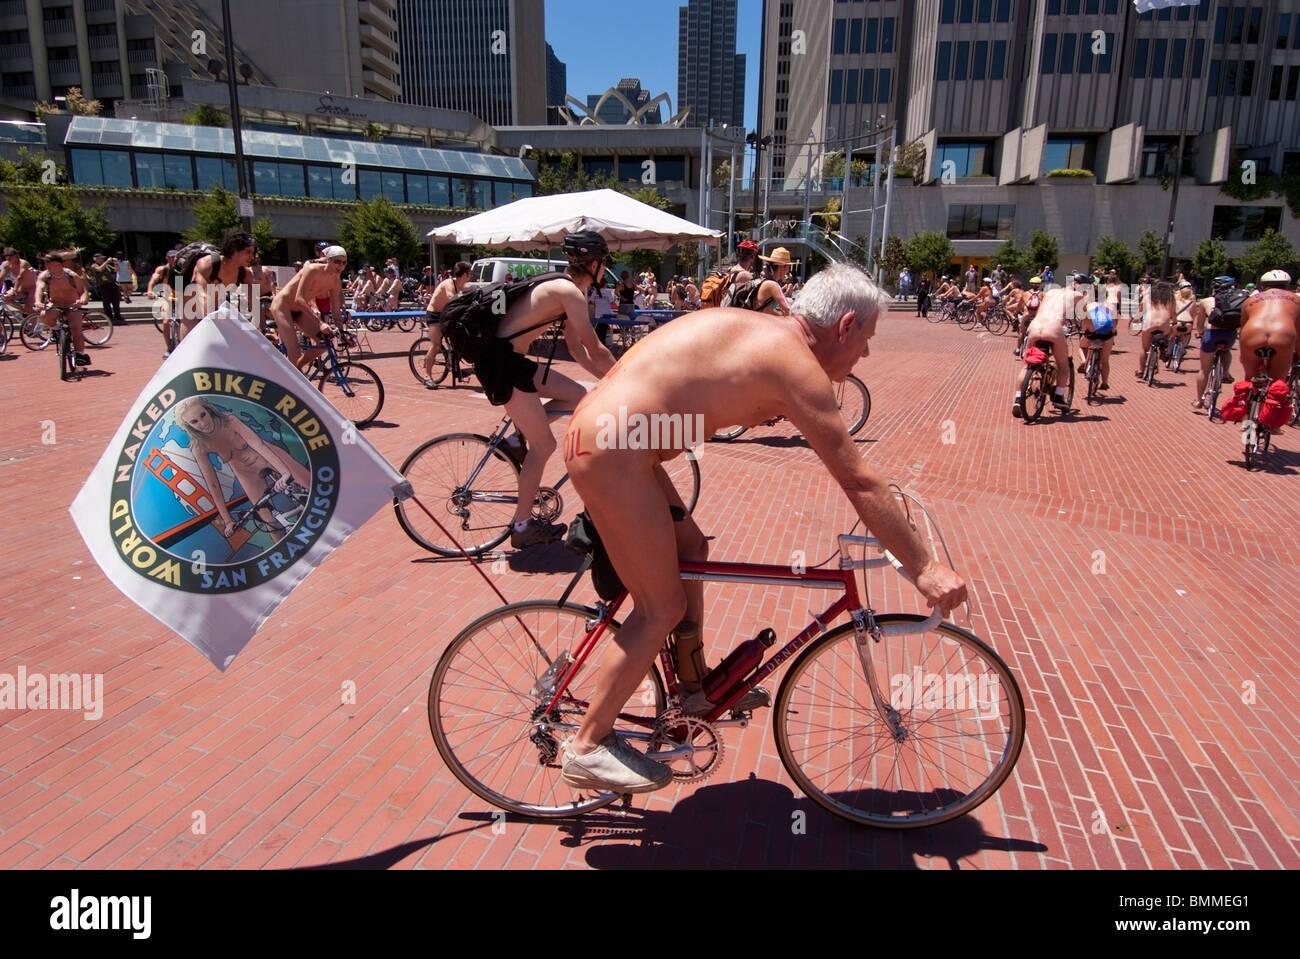 more-than-200-naked-cyclists-took-part-i